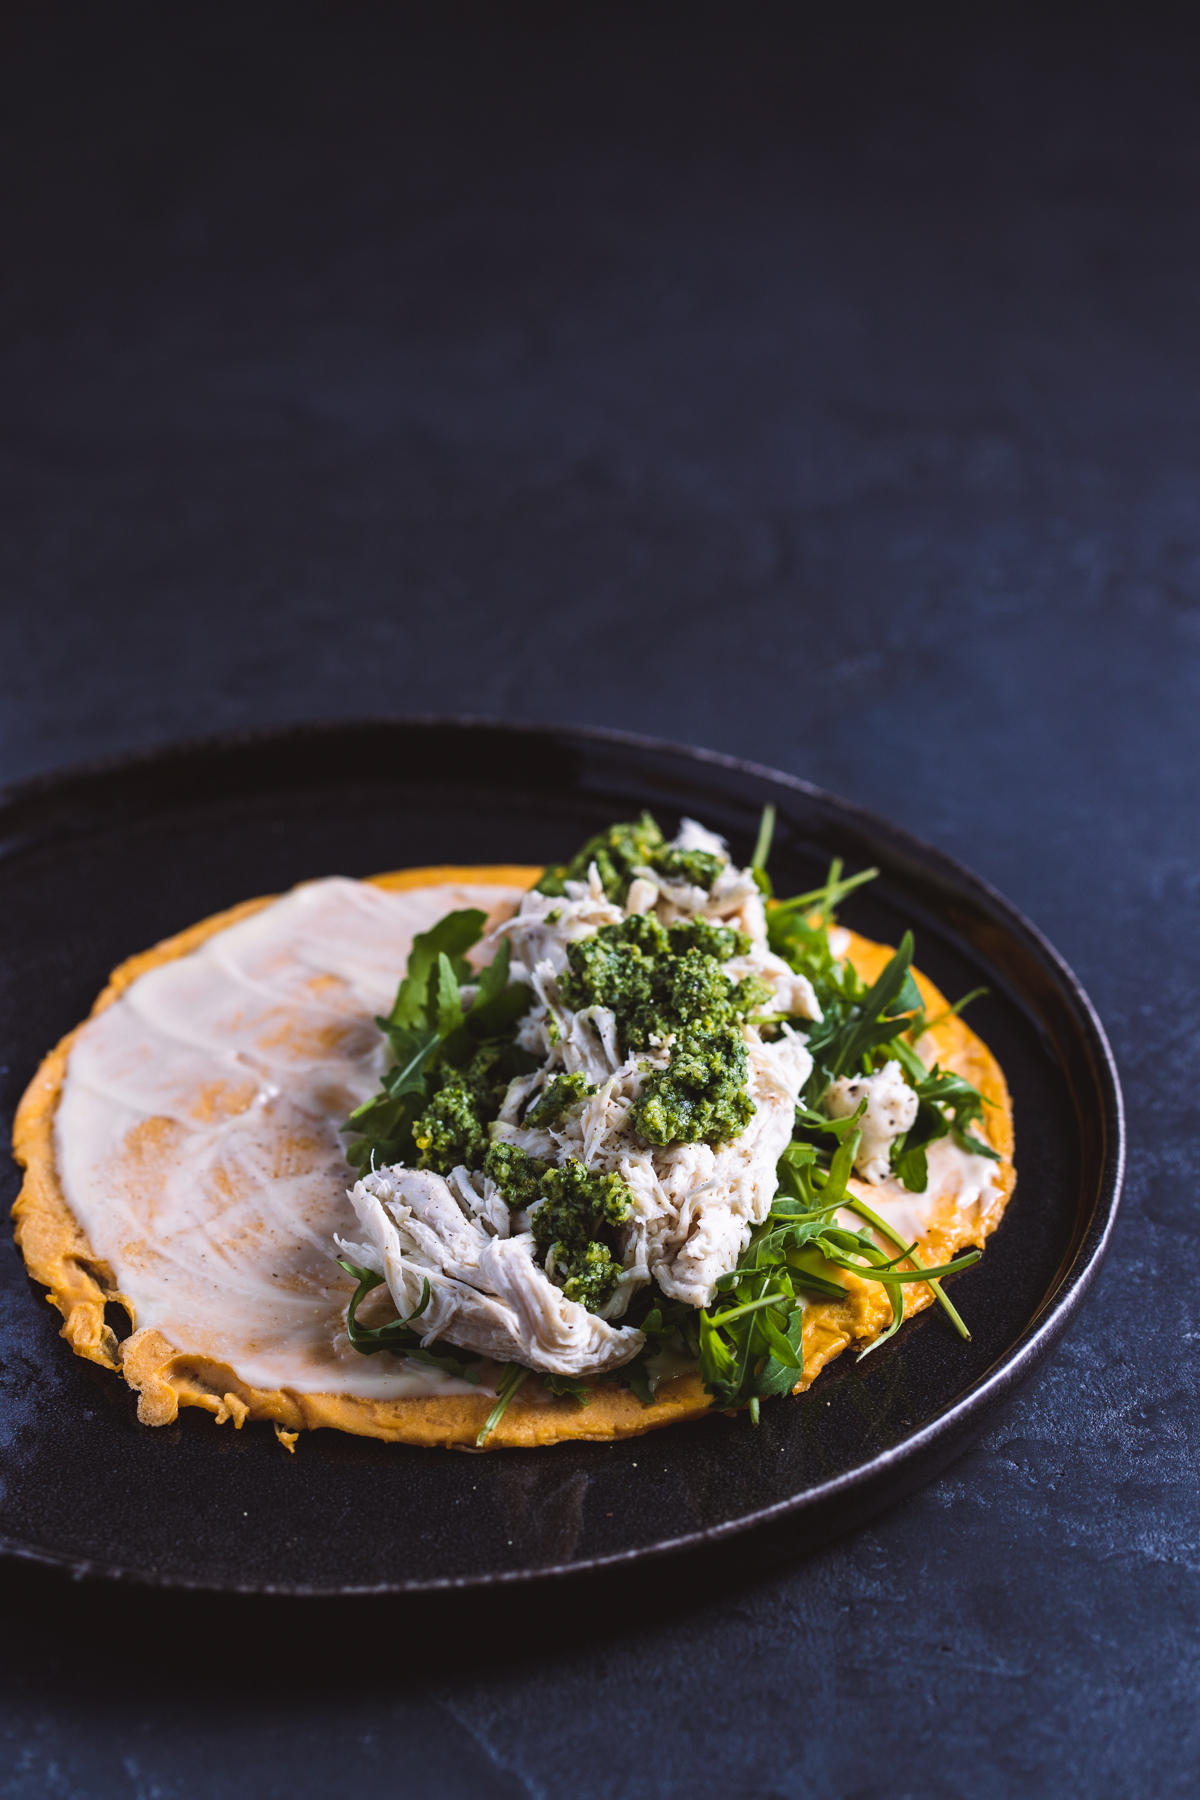 Chicken egg wrap with pesto and rocket on a black plate and black background.